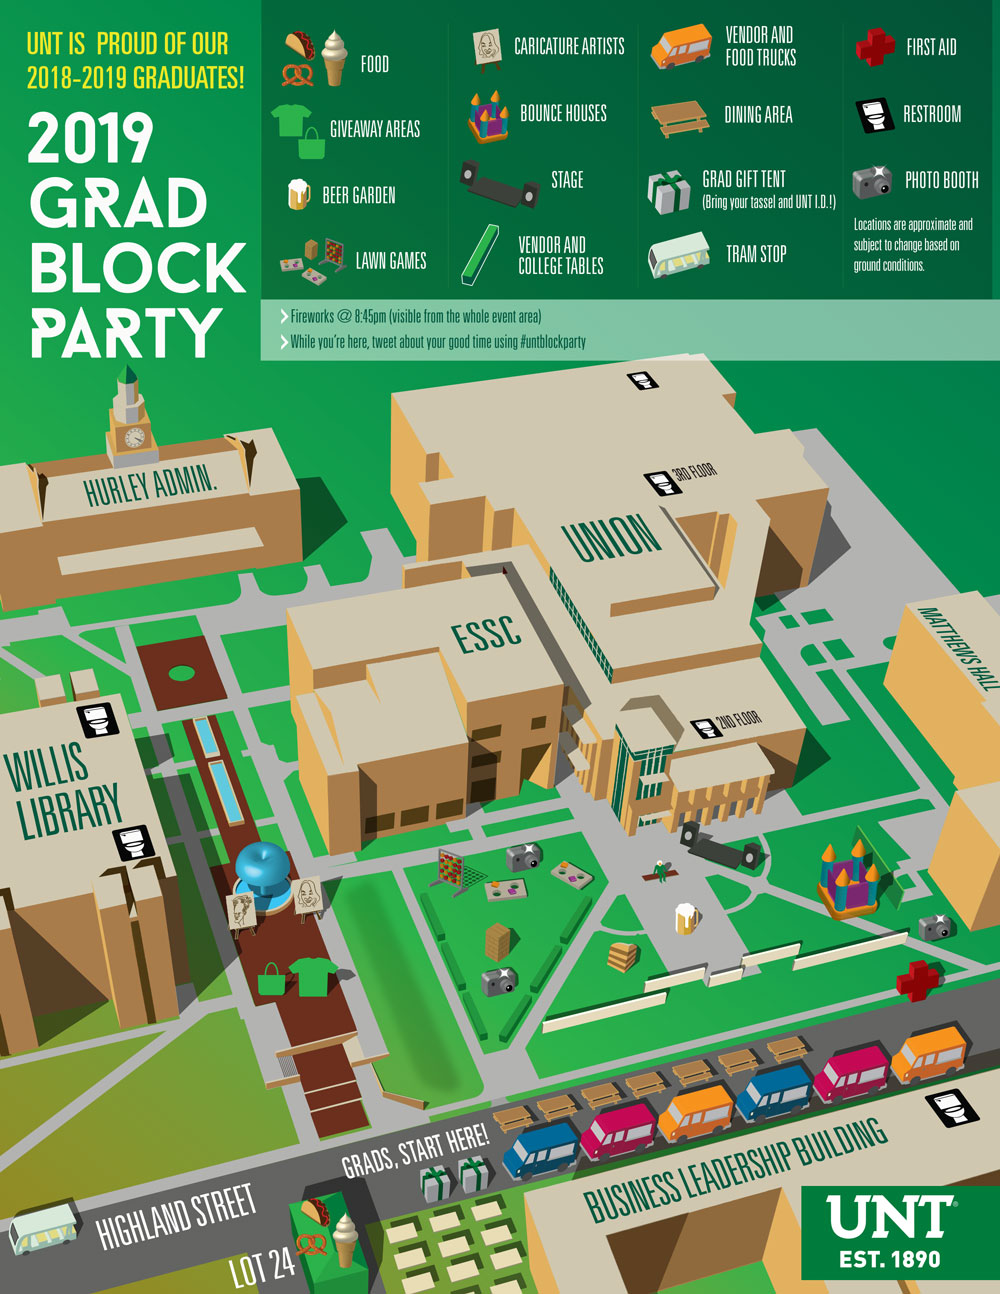 2019 Block Party map